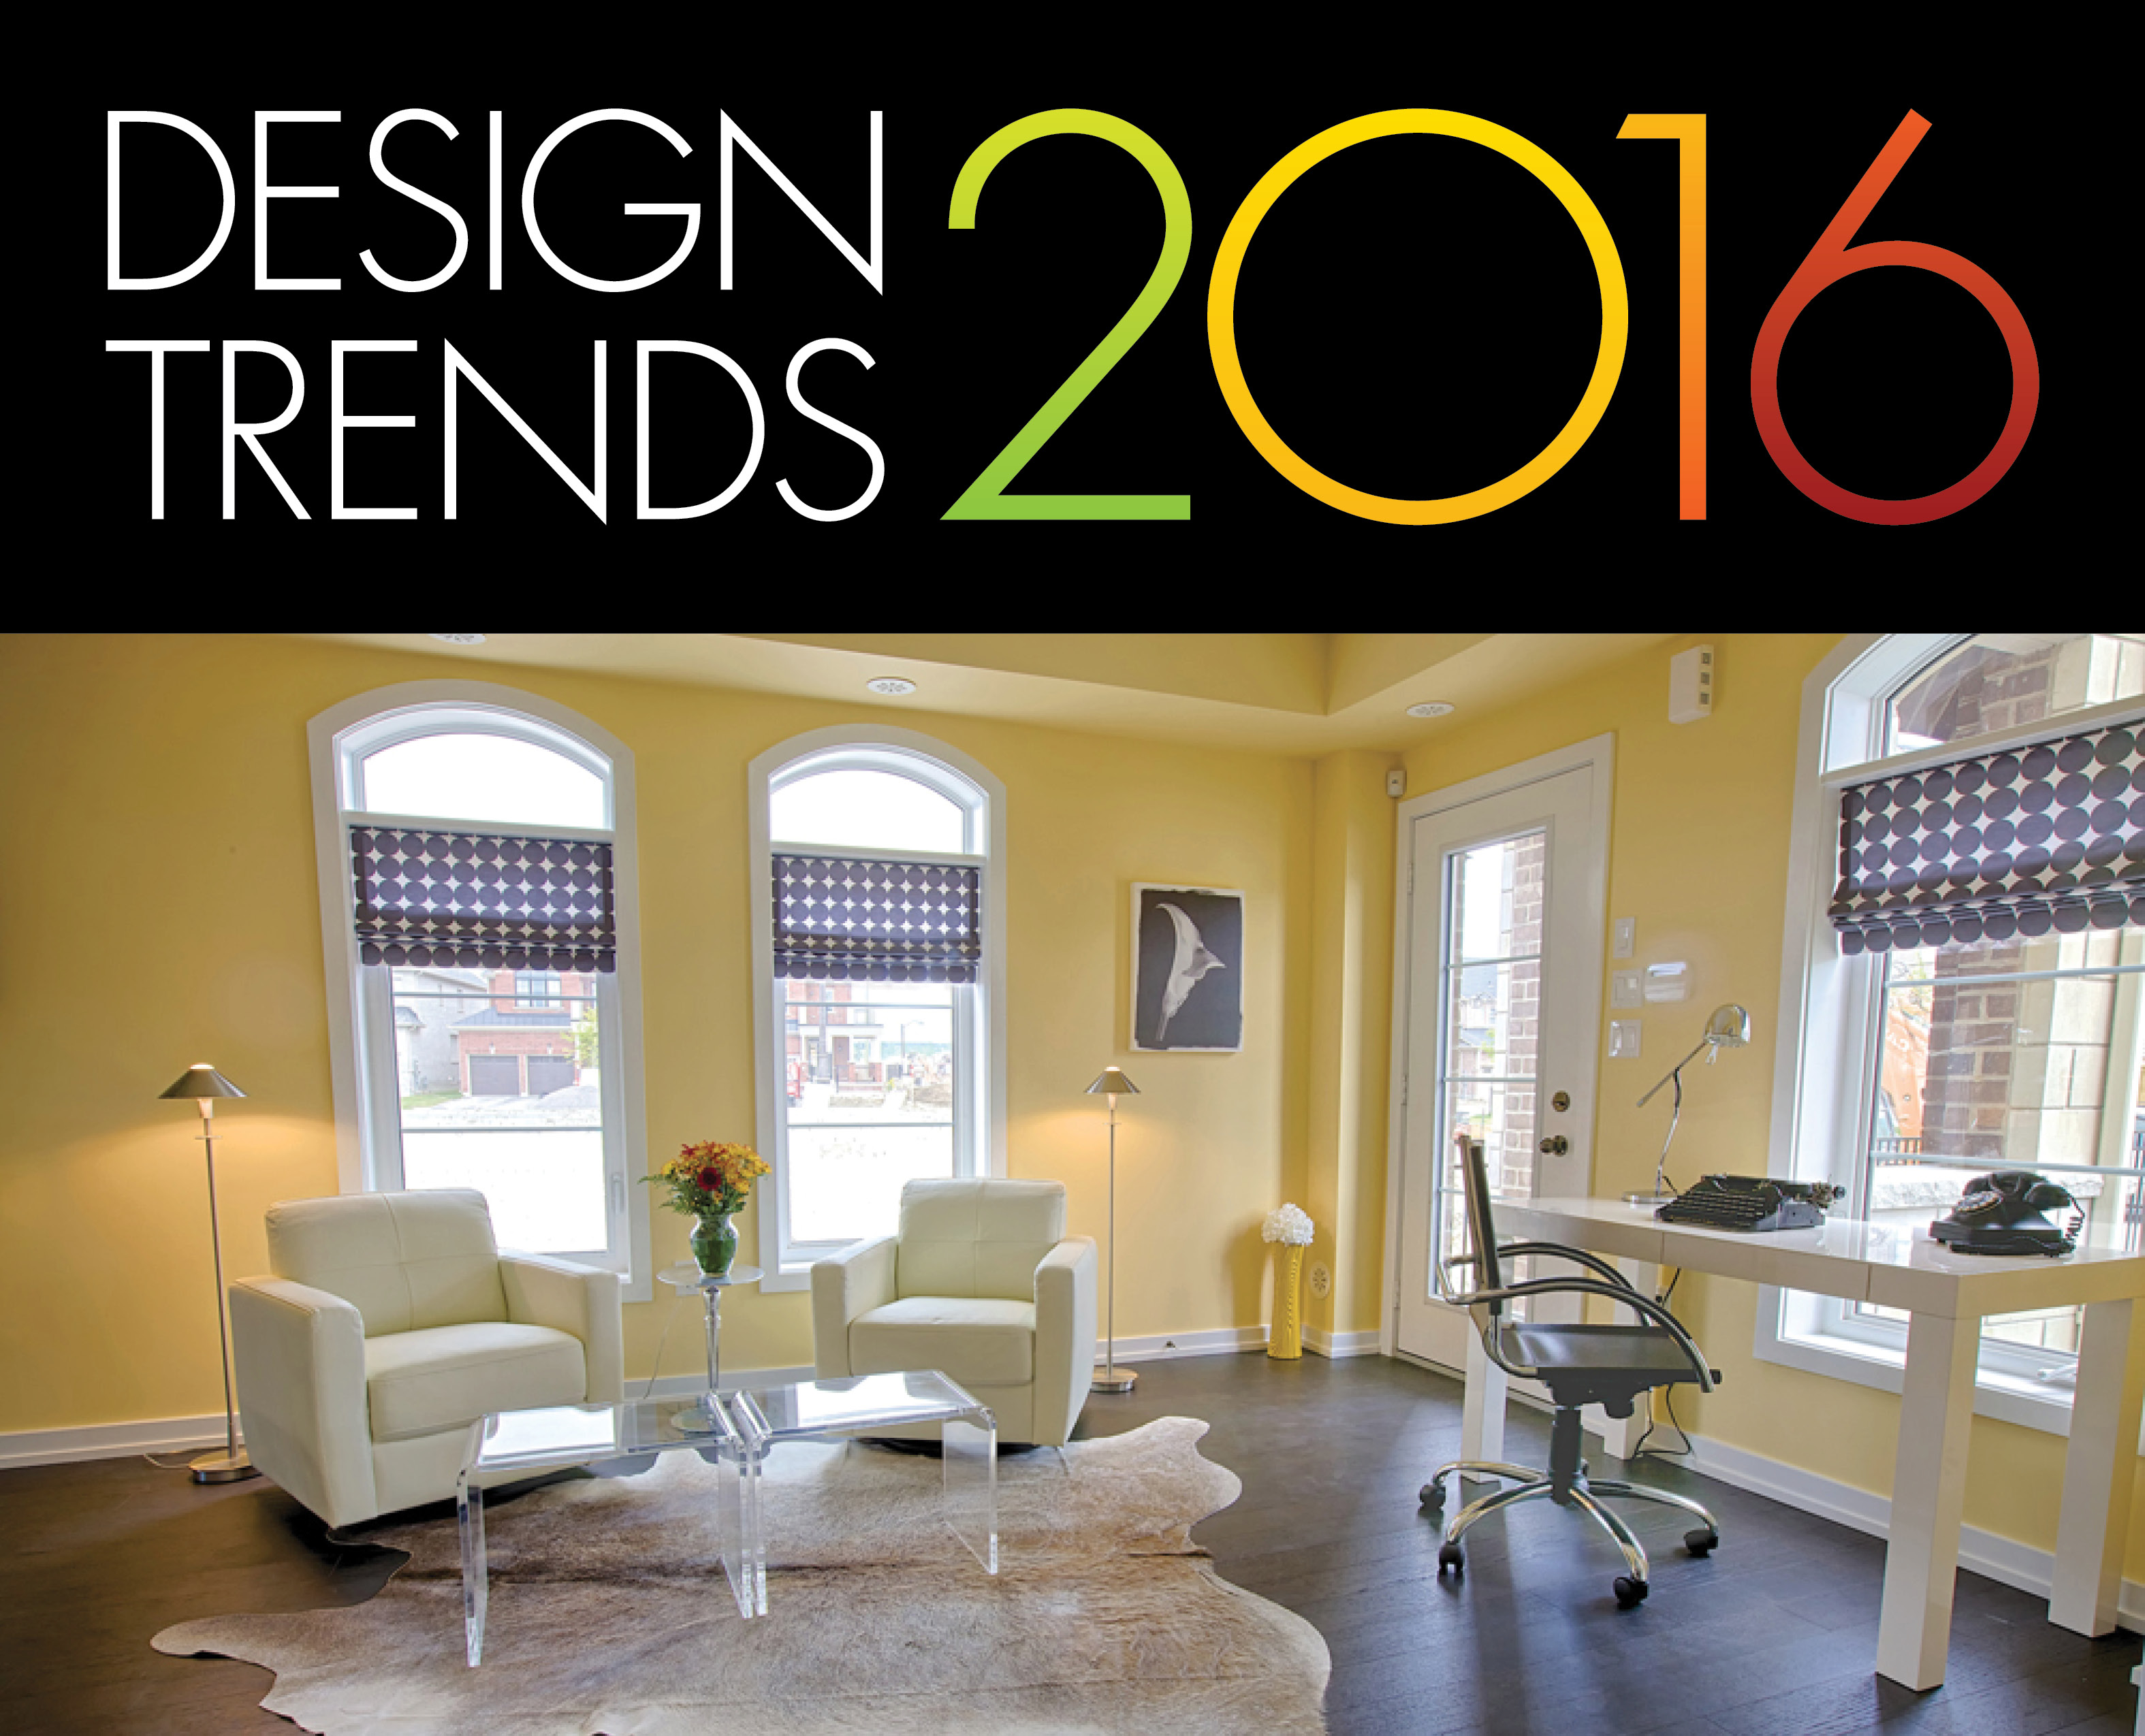 design_trends2016b - Home Decor 2015